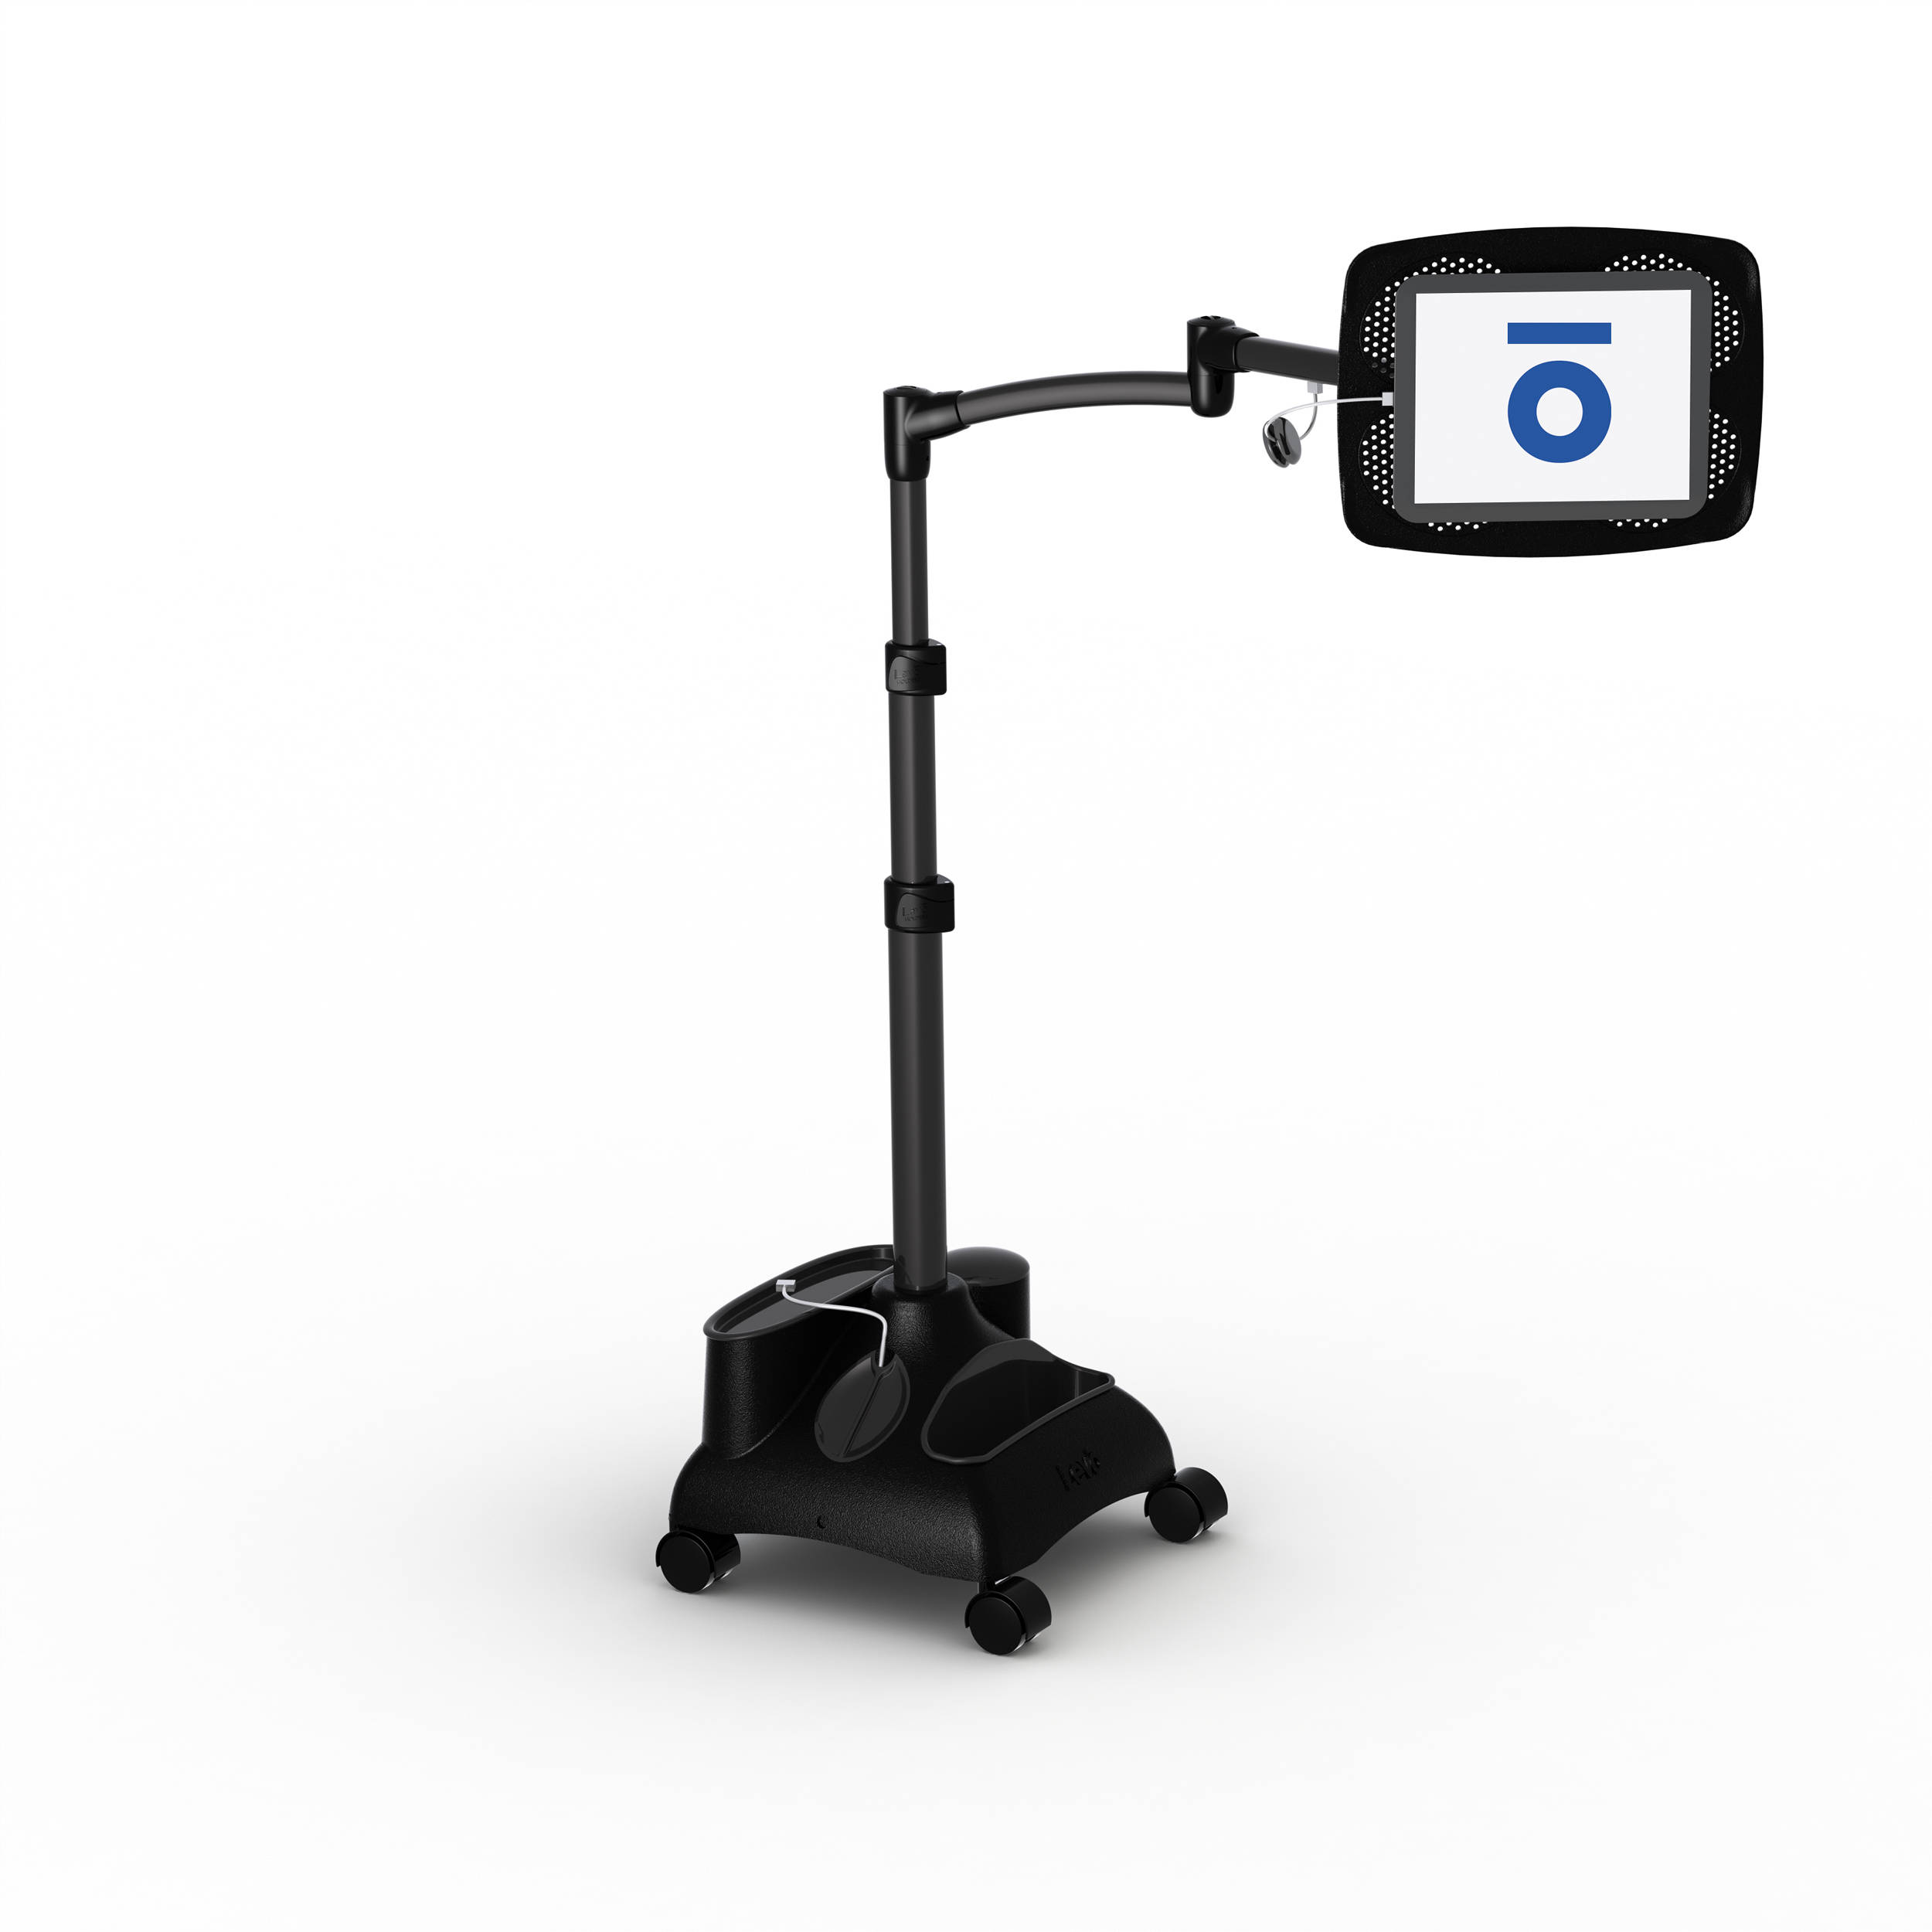 Awe Inspiring Levo G2 Amped Tablet Stand Gmtry Best Dining Table And Chair Ideas Images Gmtryco